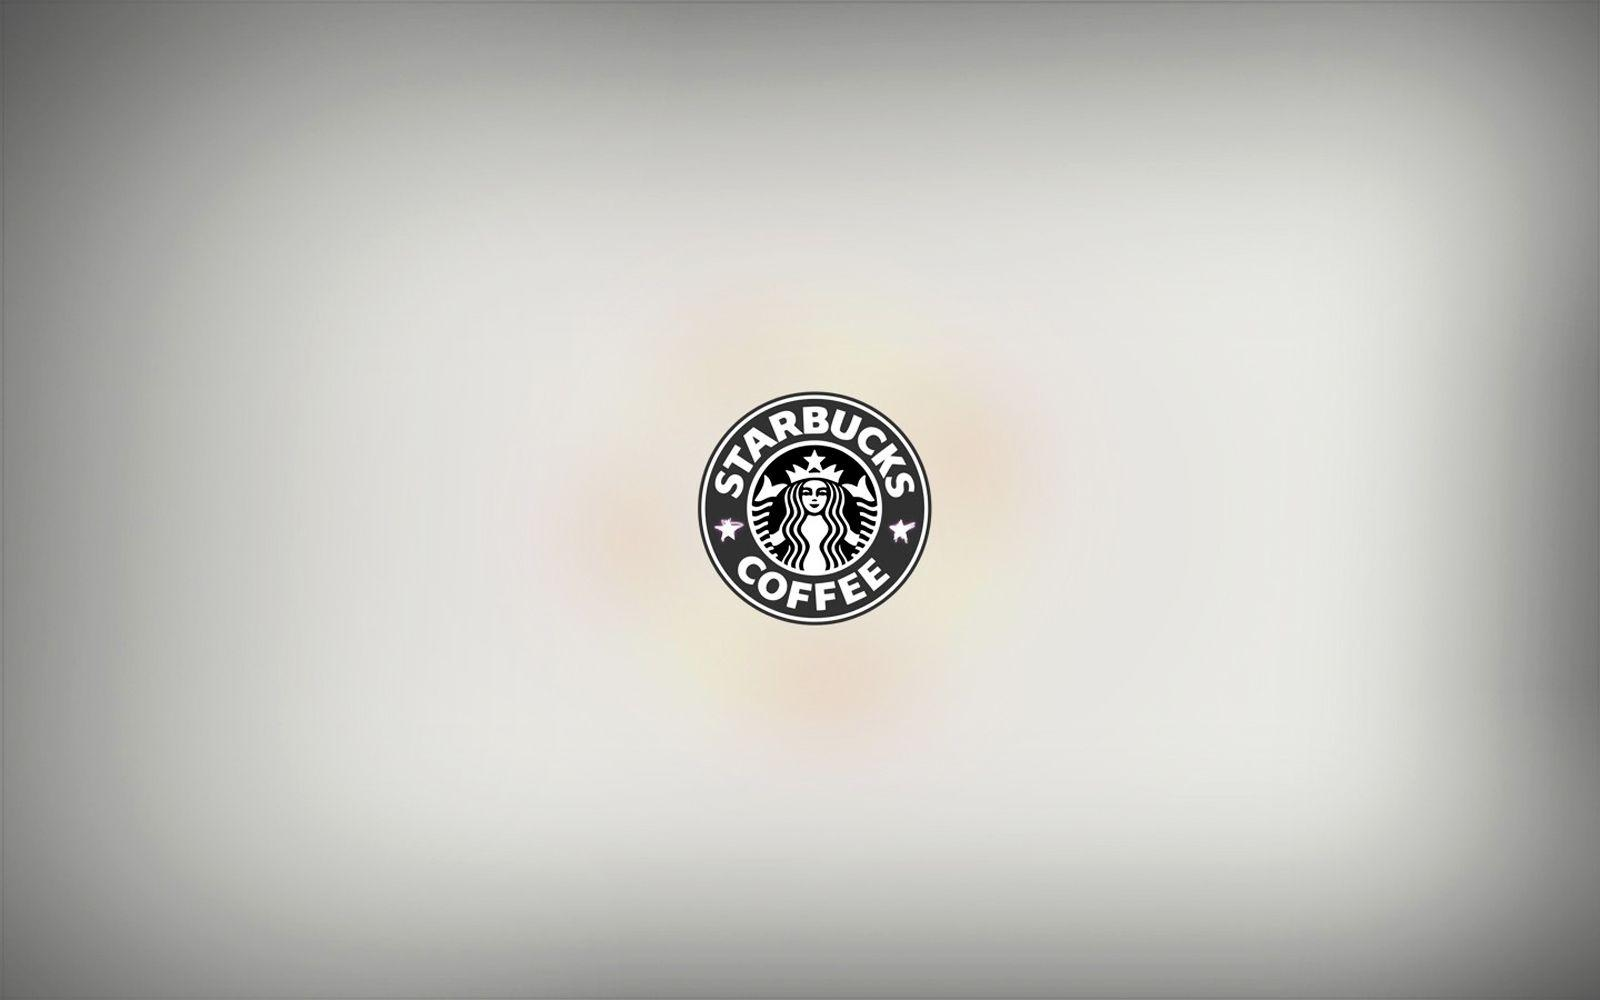 Starbucks Coffee Logo HD Wallpaper | My image